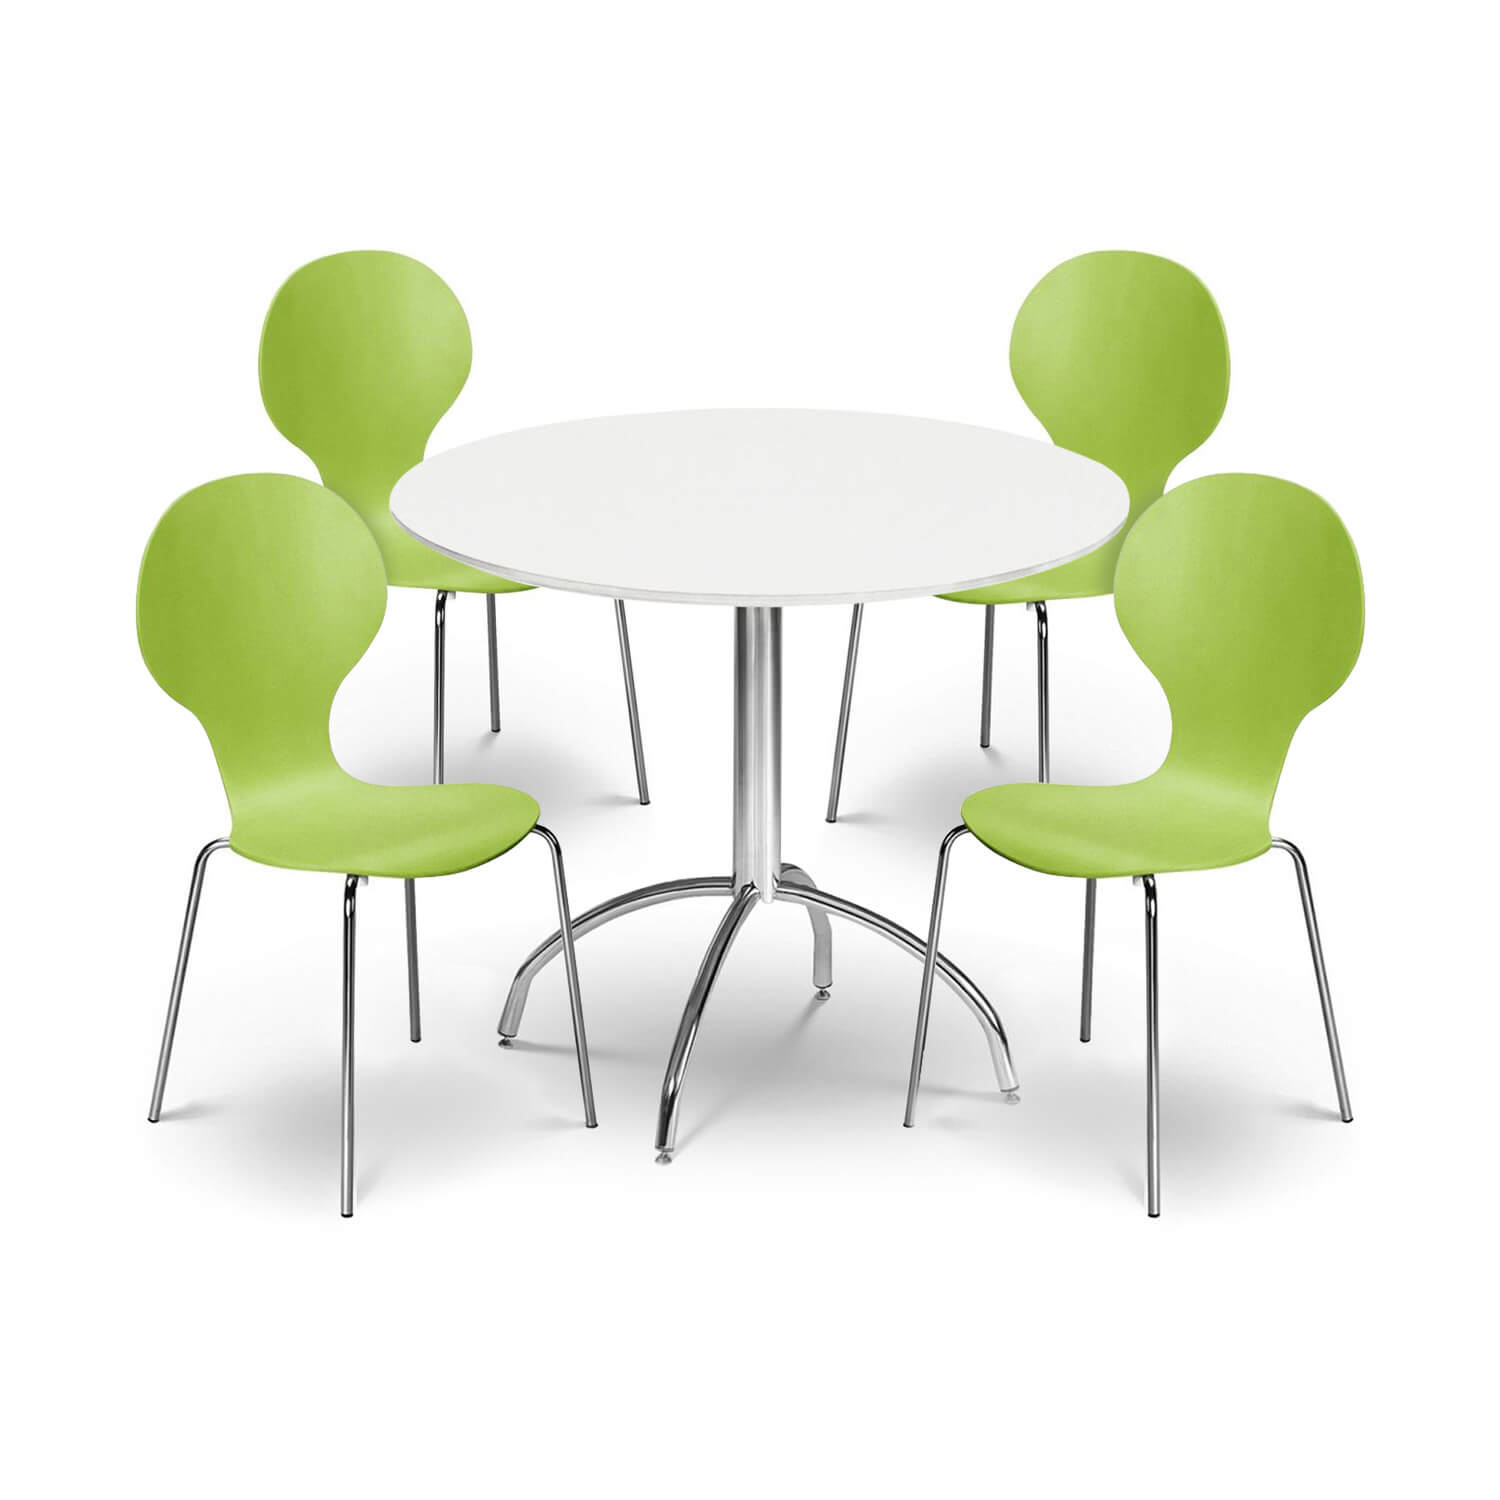 Keeler Bistro Dining Set with 4 Green Chairs